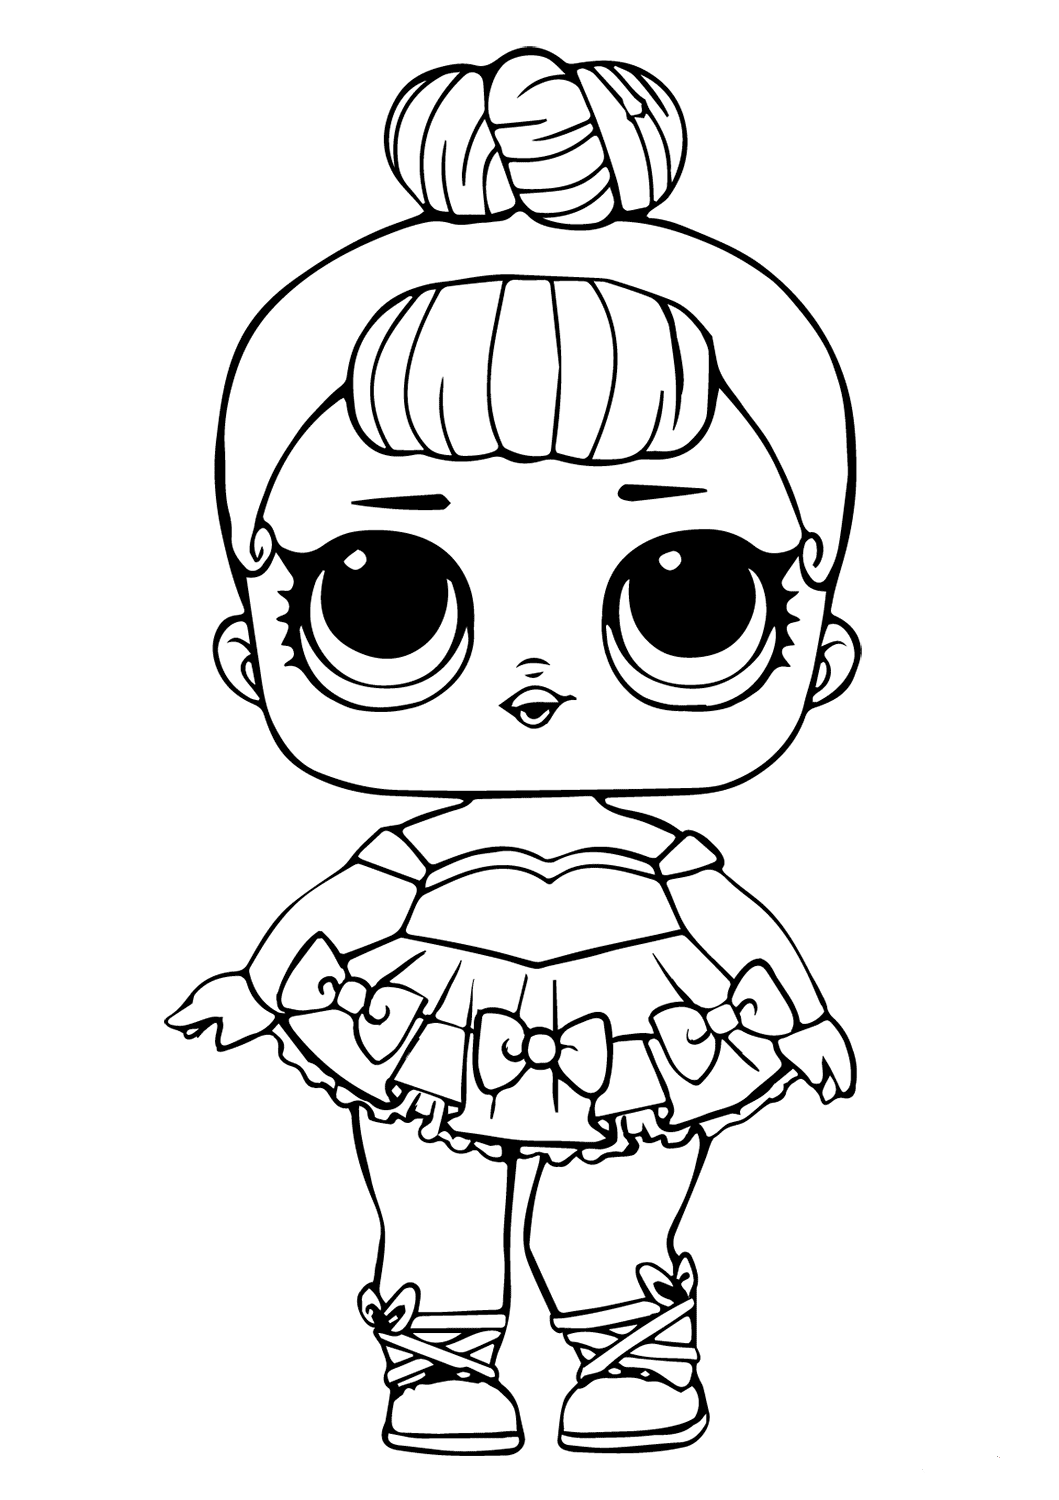 coloring template printable lol colouring pages lol doll line dancer coloring page free printable coloring pages lol printable template colouring